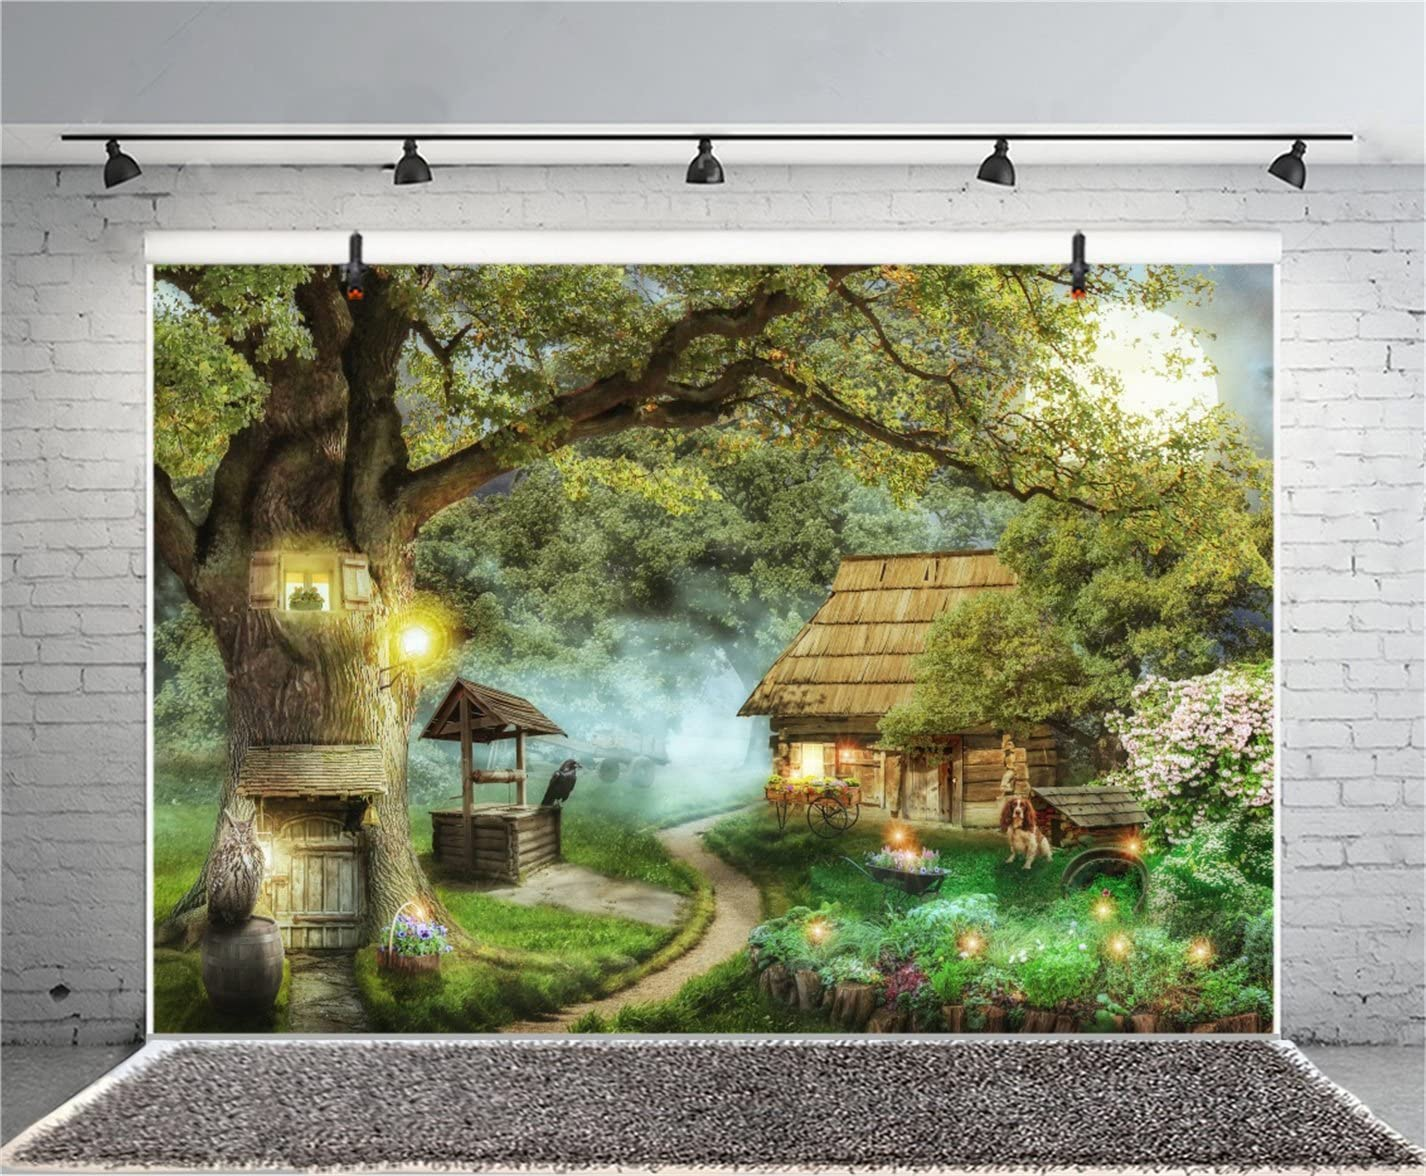 Zhy ForeTree House Backdrop for Photography 7x5ft 2.1x1.5m Cabin Scarecrow Gift Background Party Decor Supplies Photo Shooting Props BJYYST3